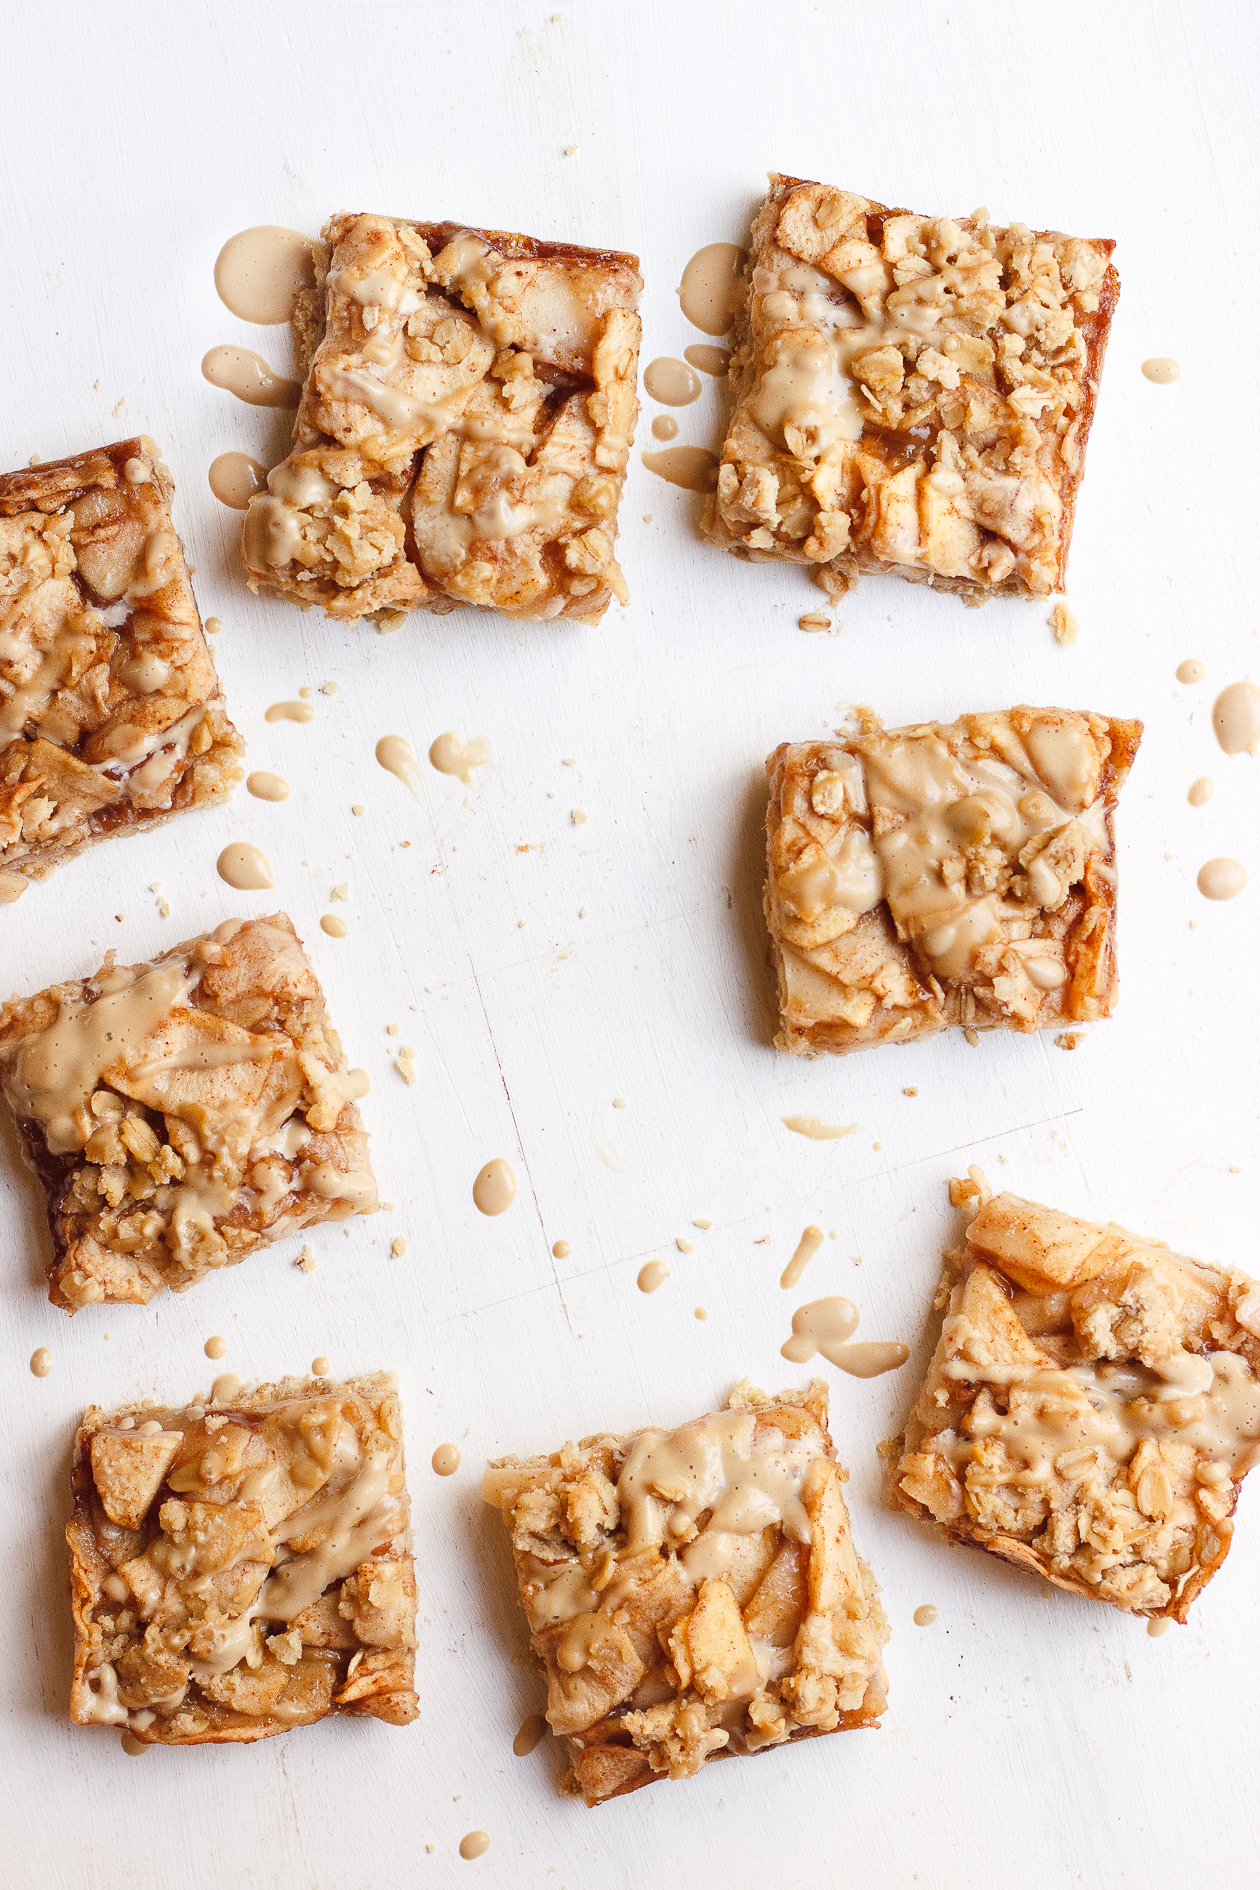 Apple Crumb Bars with Maple Coffee Glaze